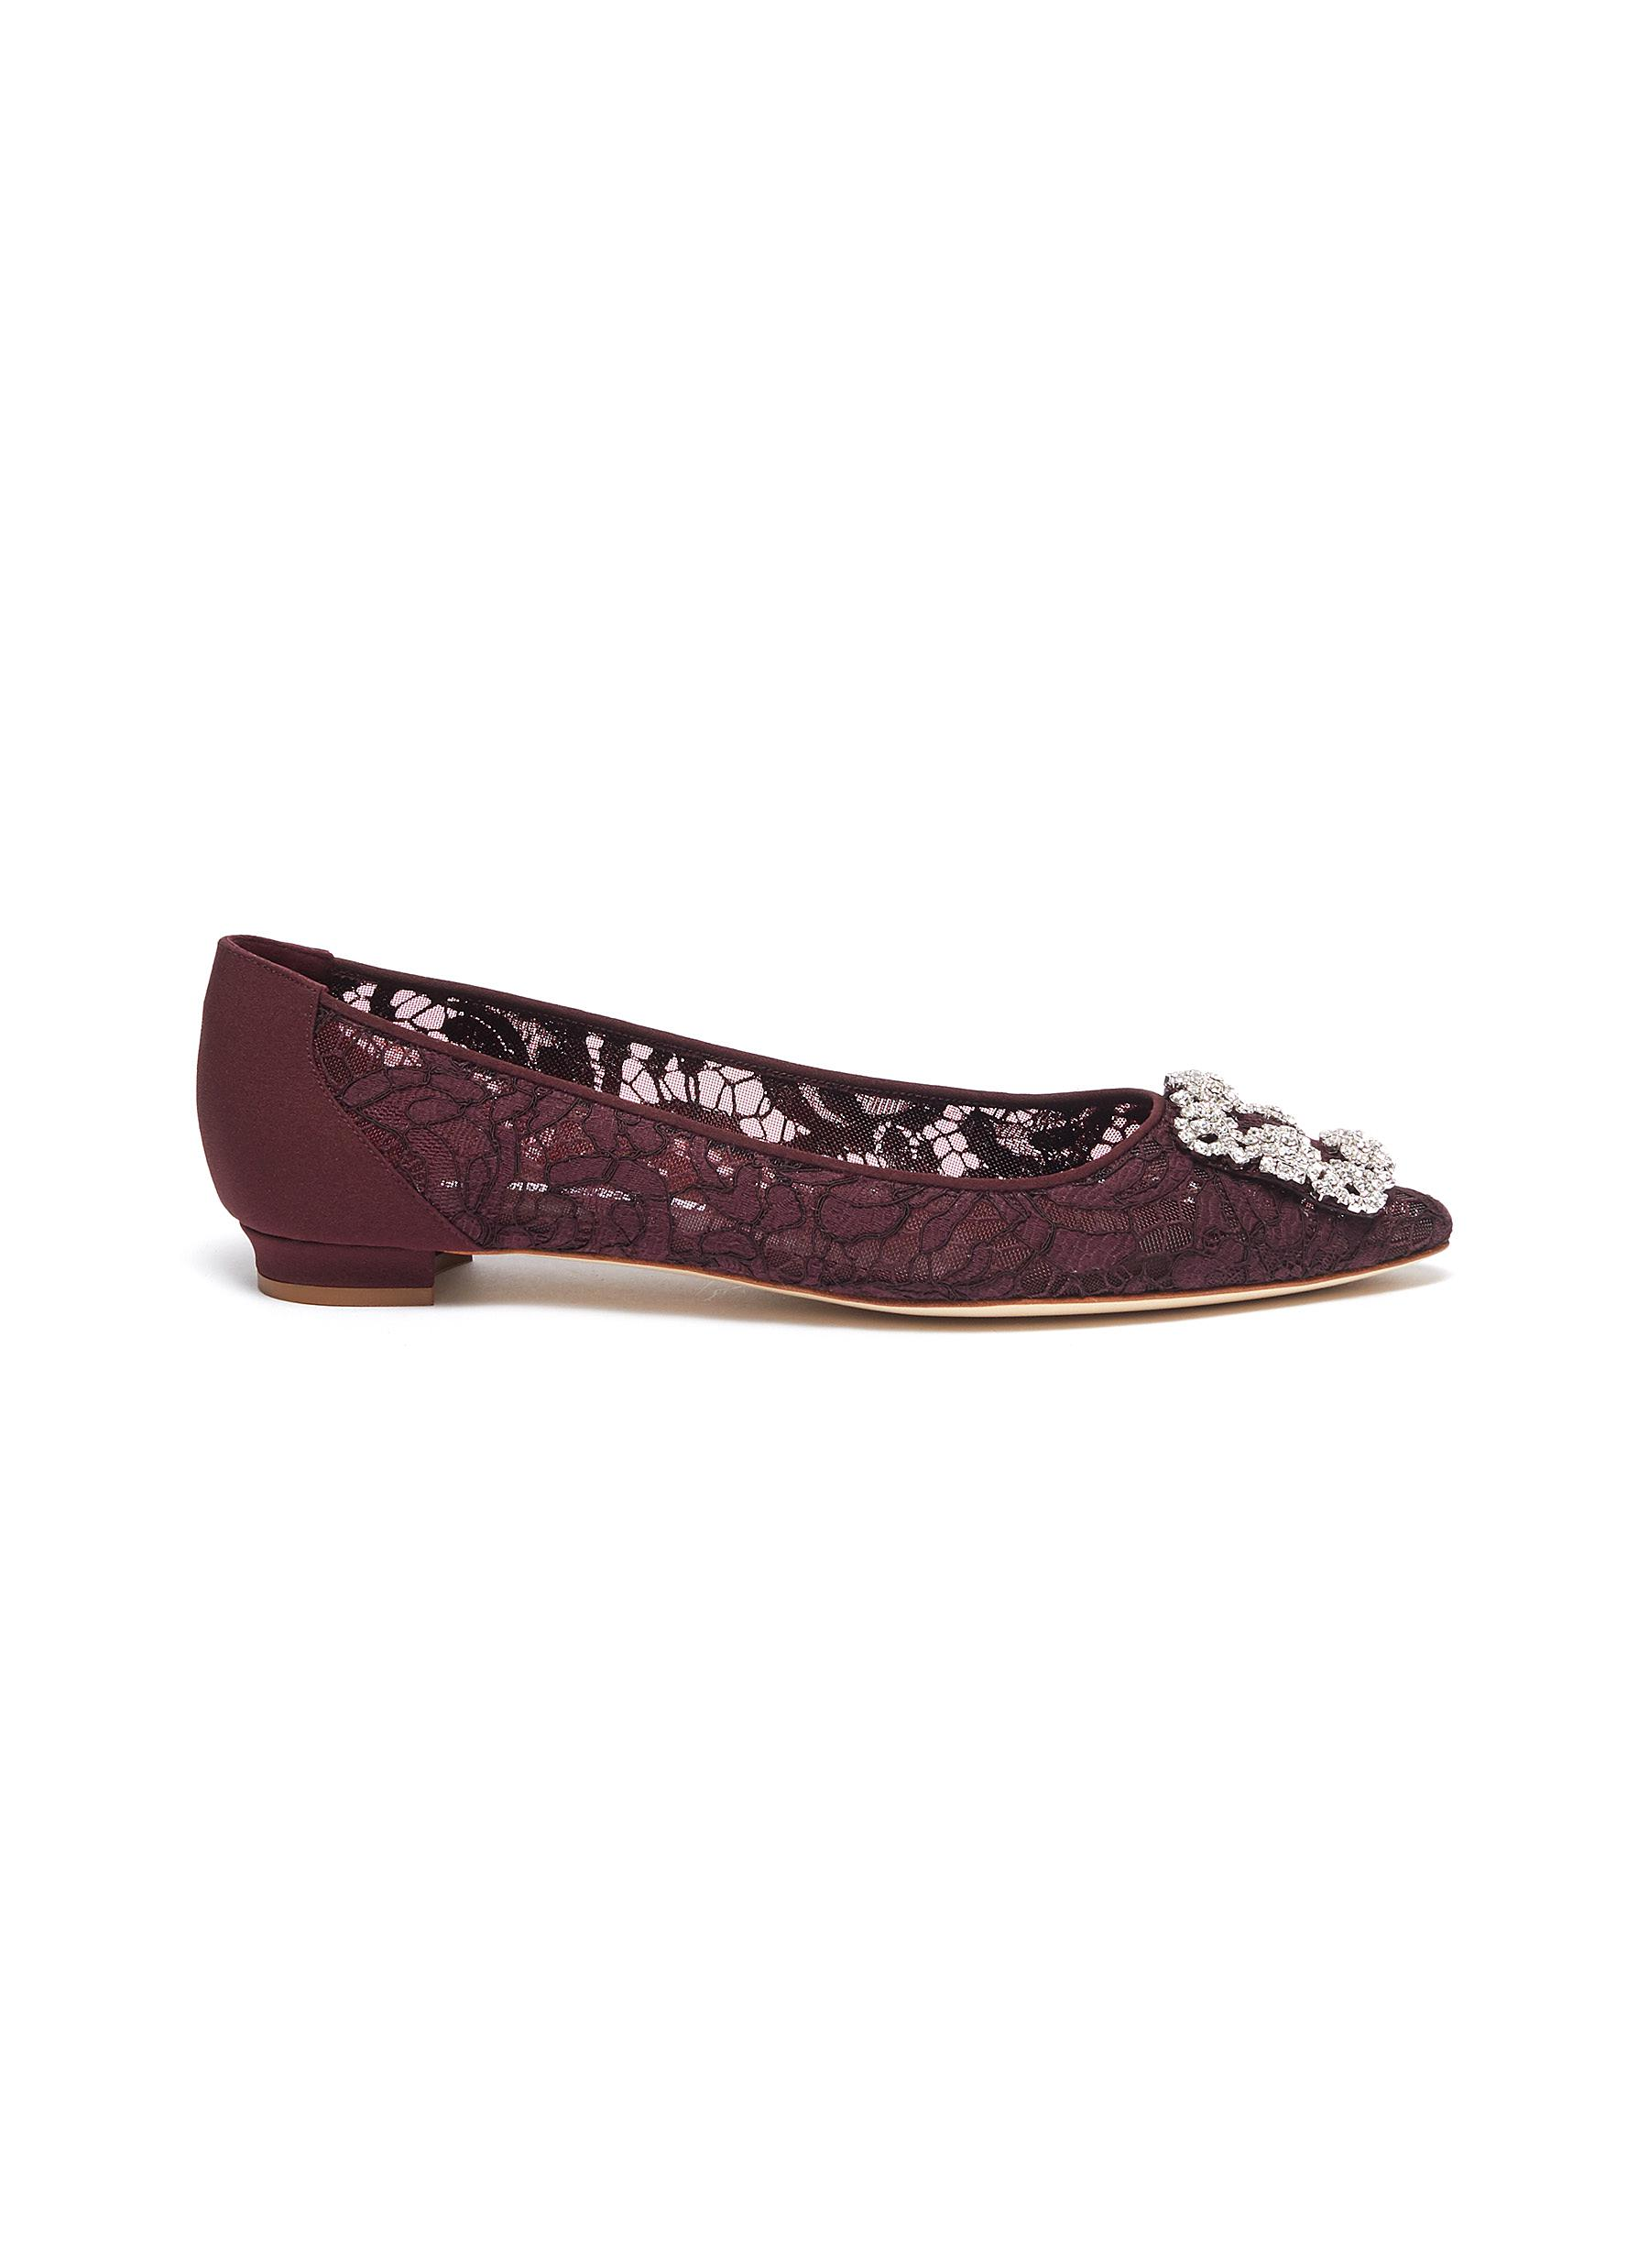 Hangisi Swarovski crystal brooch lace flats by Manolo Blahnik